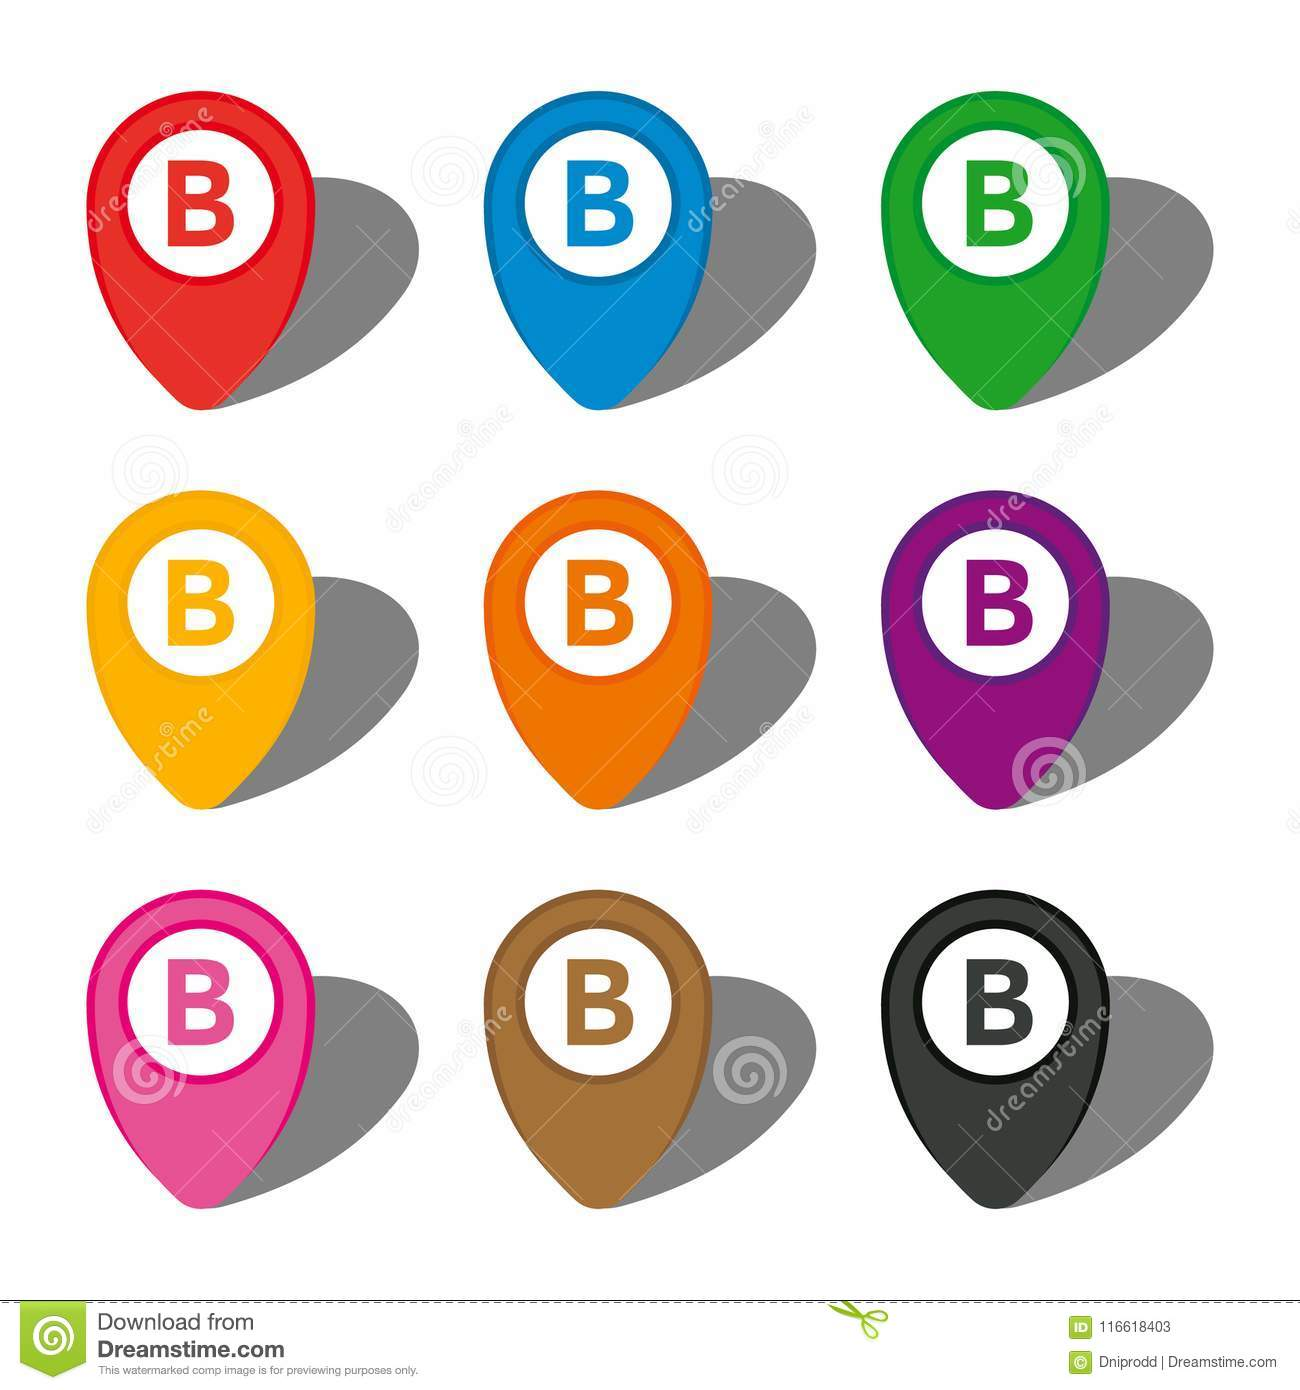 Set Of Nine Colorful Map Pointers With Point B Sign In White